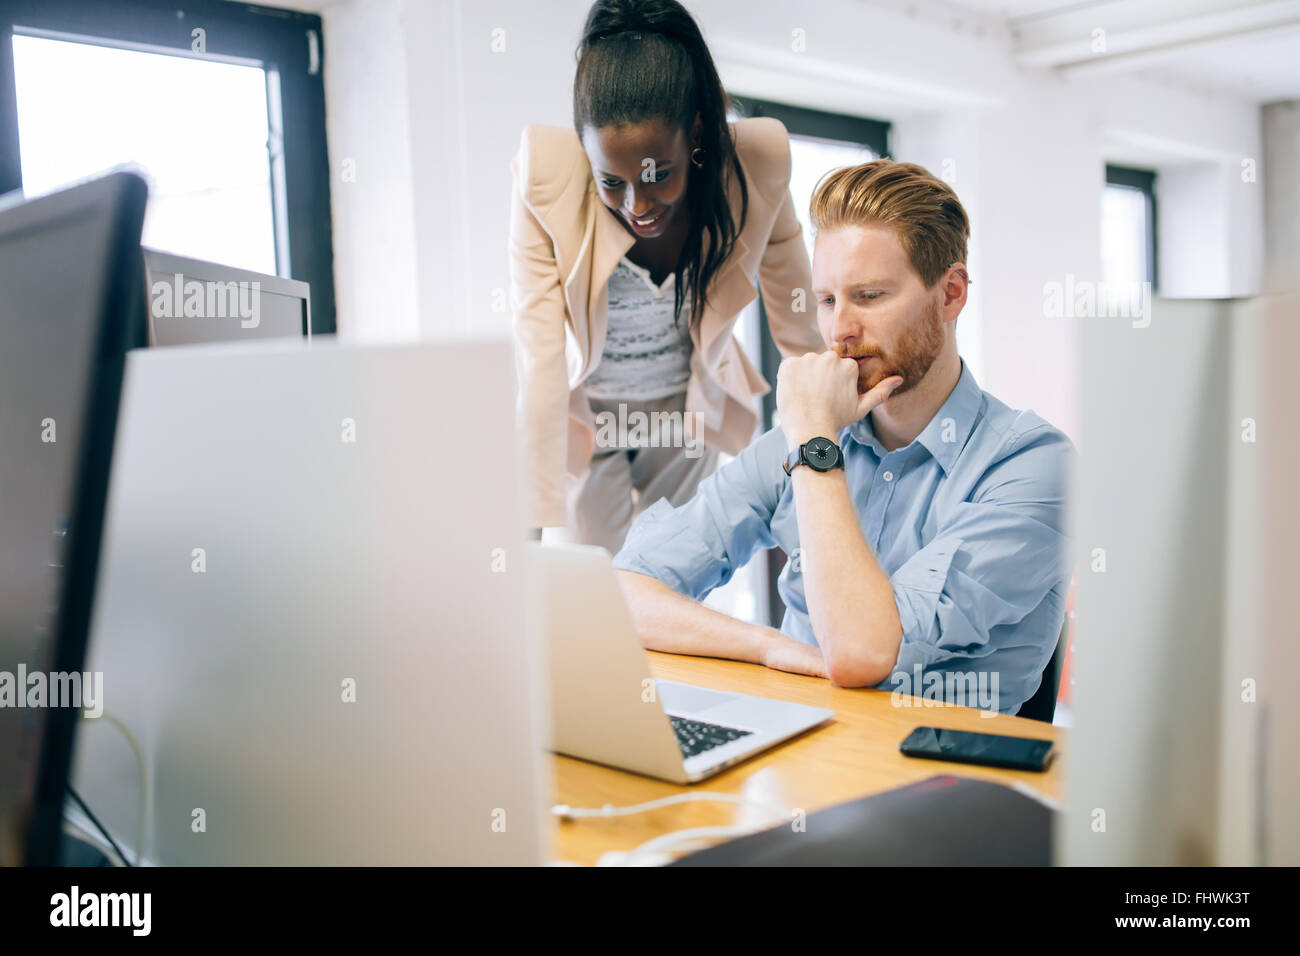 Supervising colleague during work in office - Stock Image